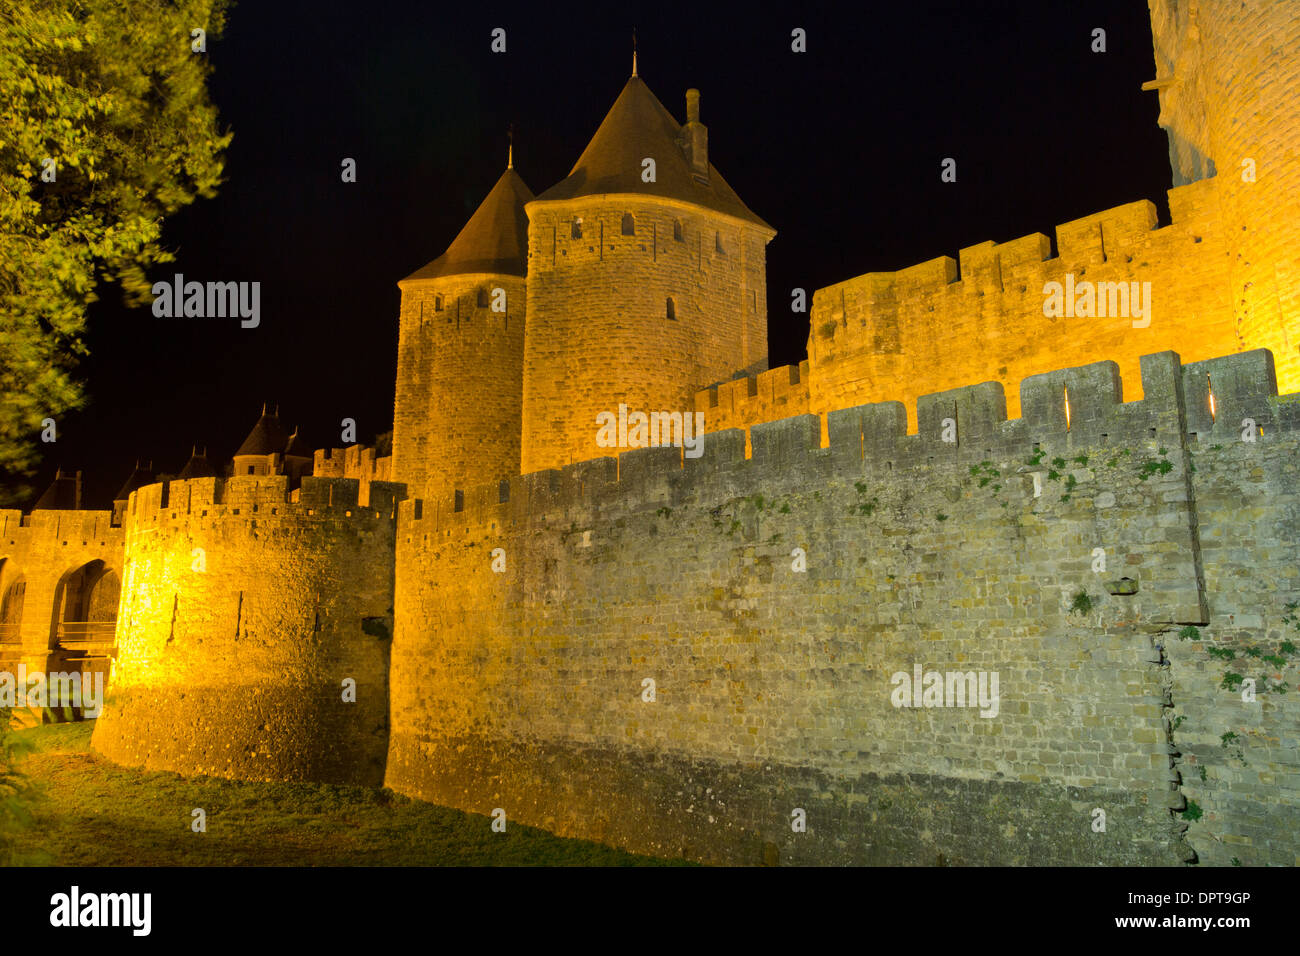 The medieval fortifications of the ancient citadel of Carcassonne, south-west France - Stock Image